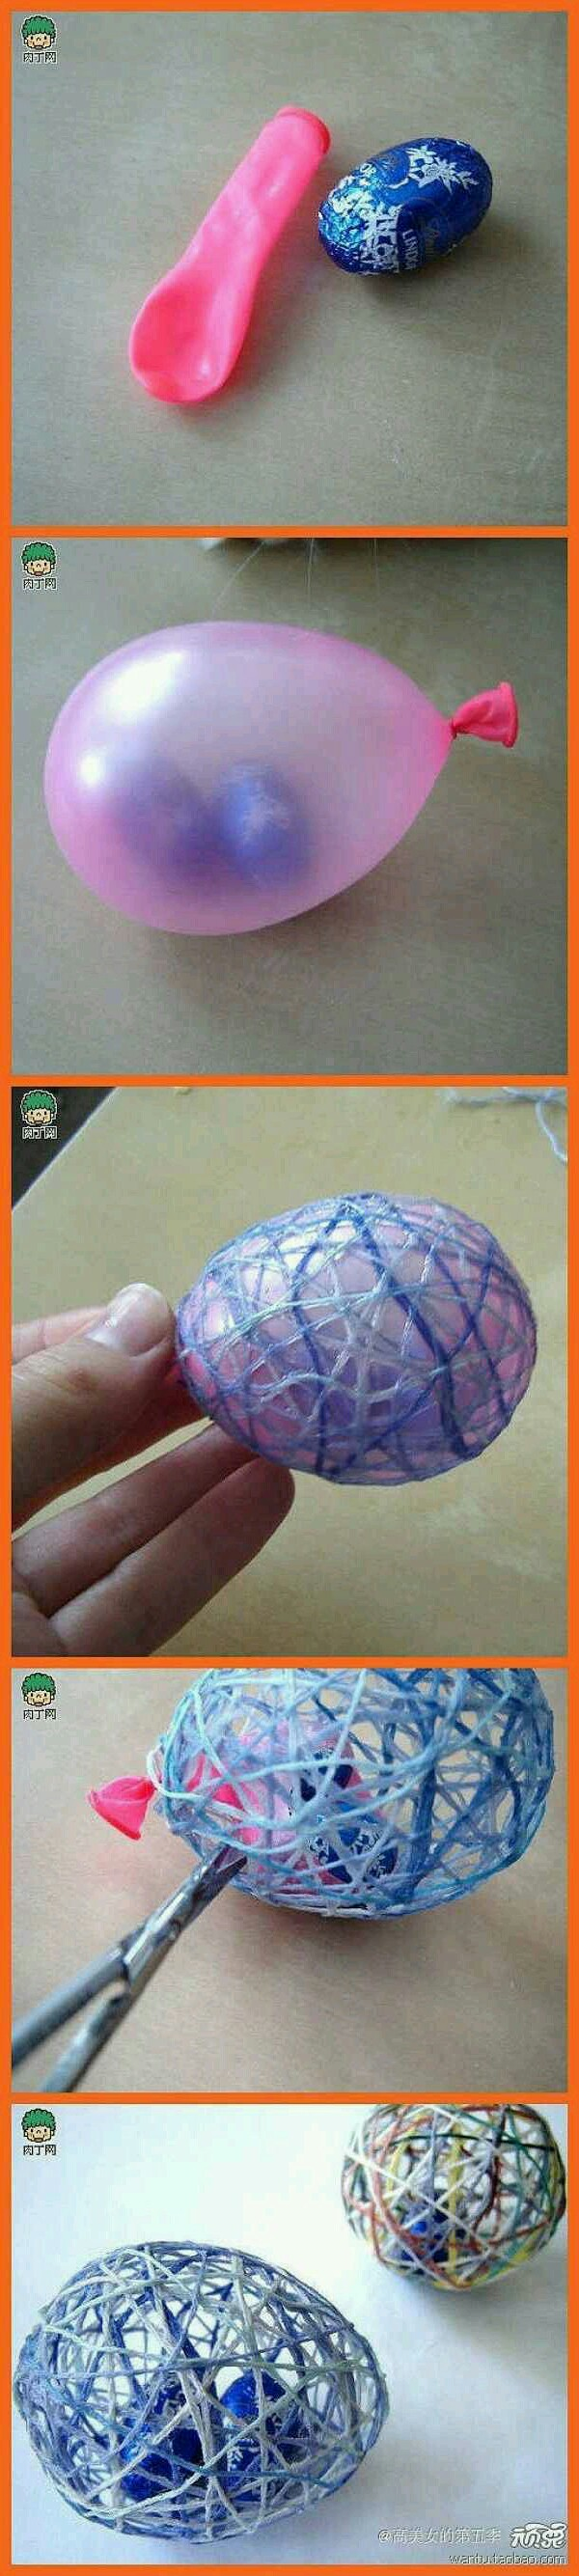 coat yarn in Modge podge and wrap around balloon. let dry and then pop balloon.